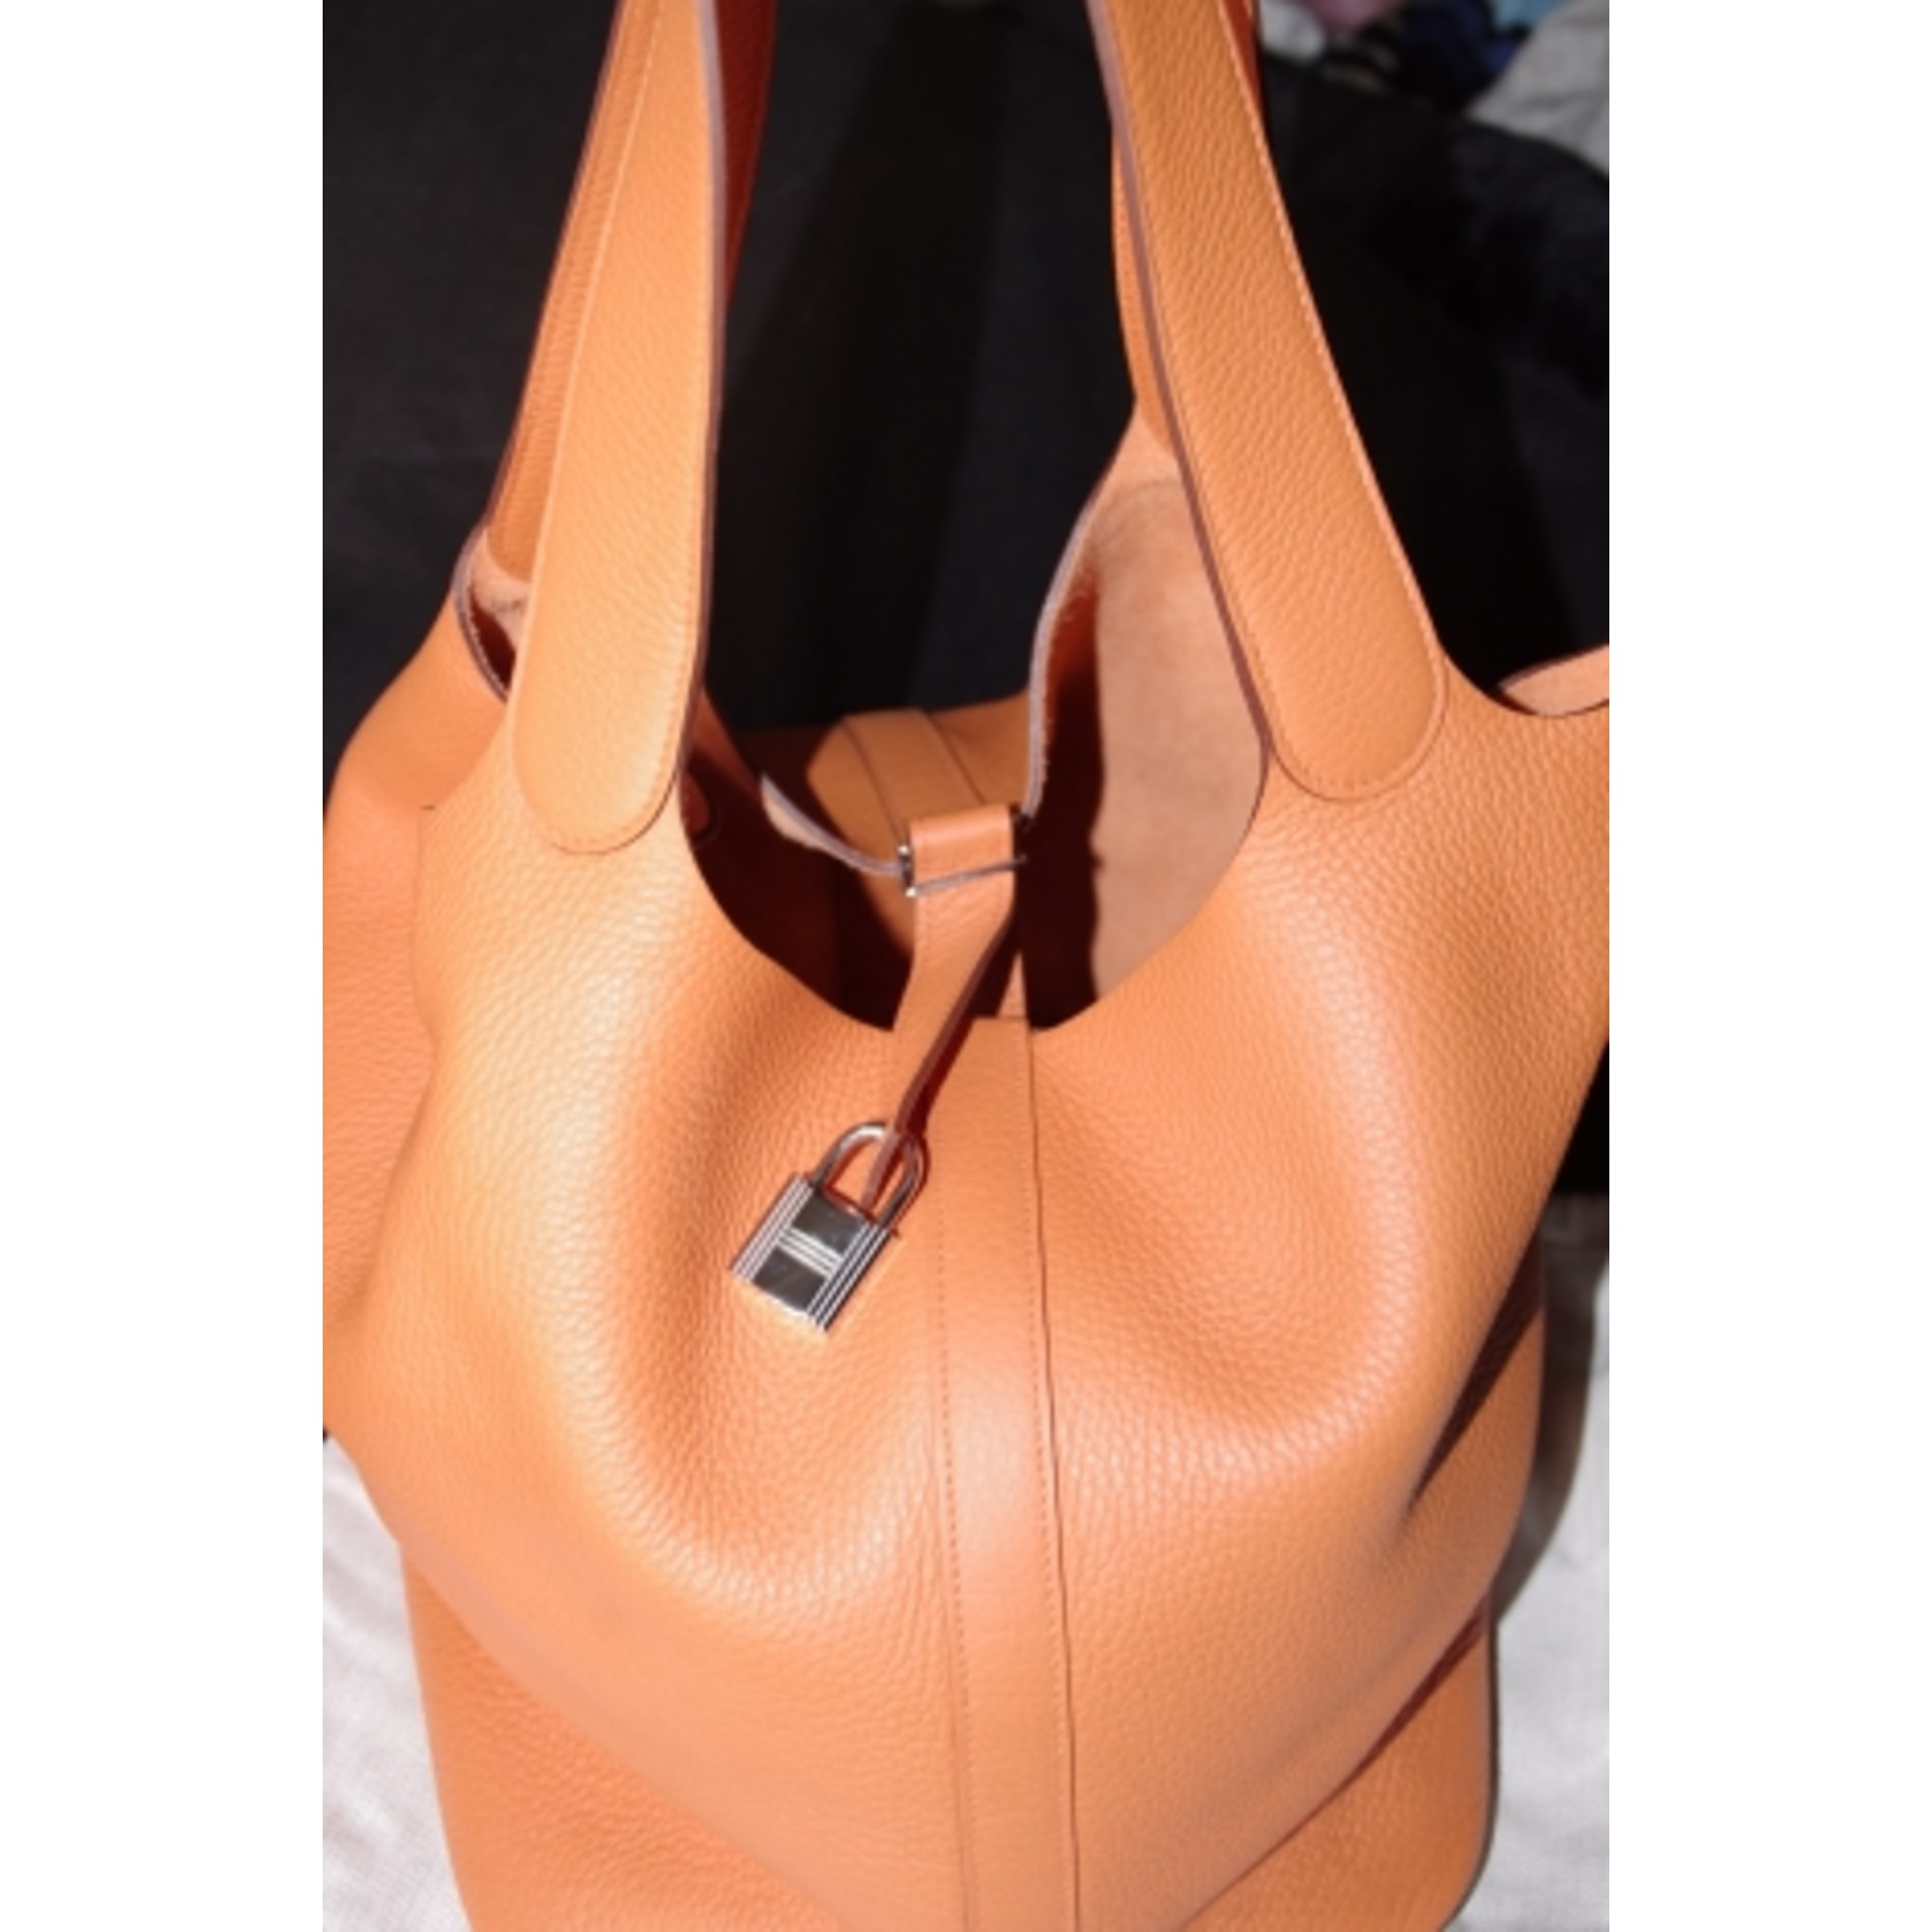 8ffdee0ff8 Sac à main en cuir HERMÈS orange - 1173784